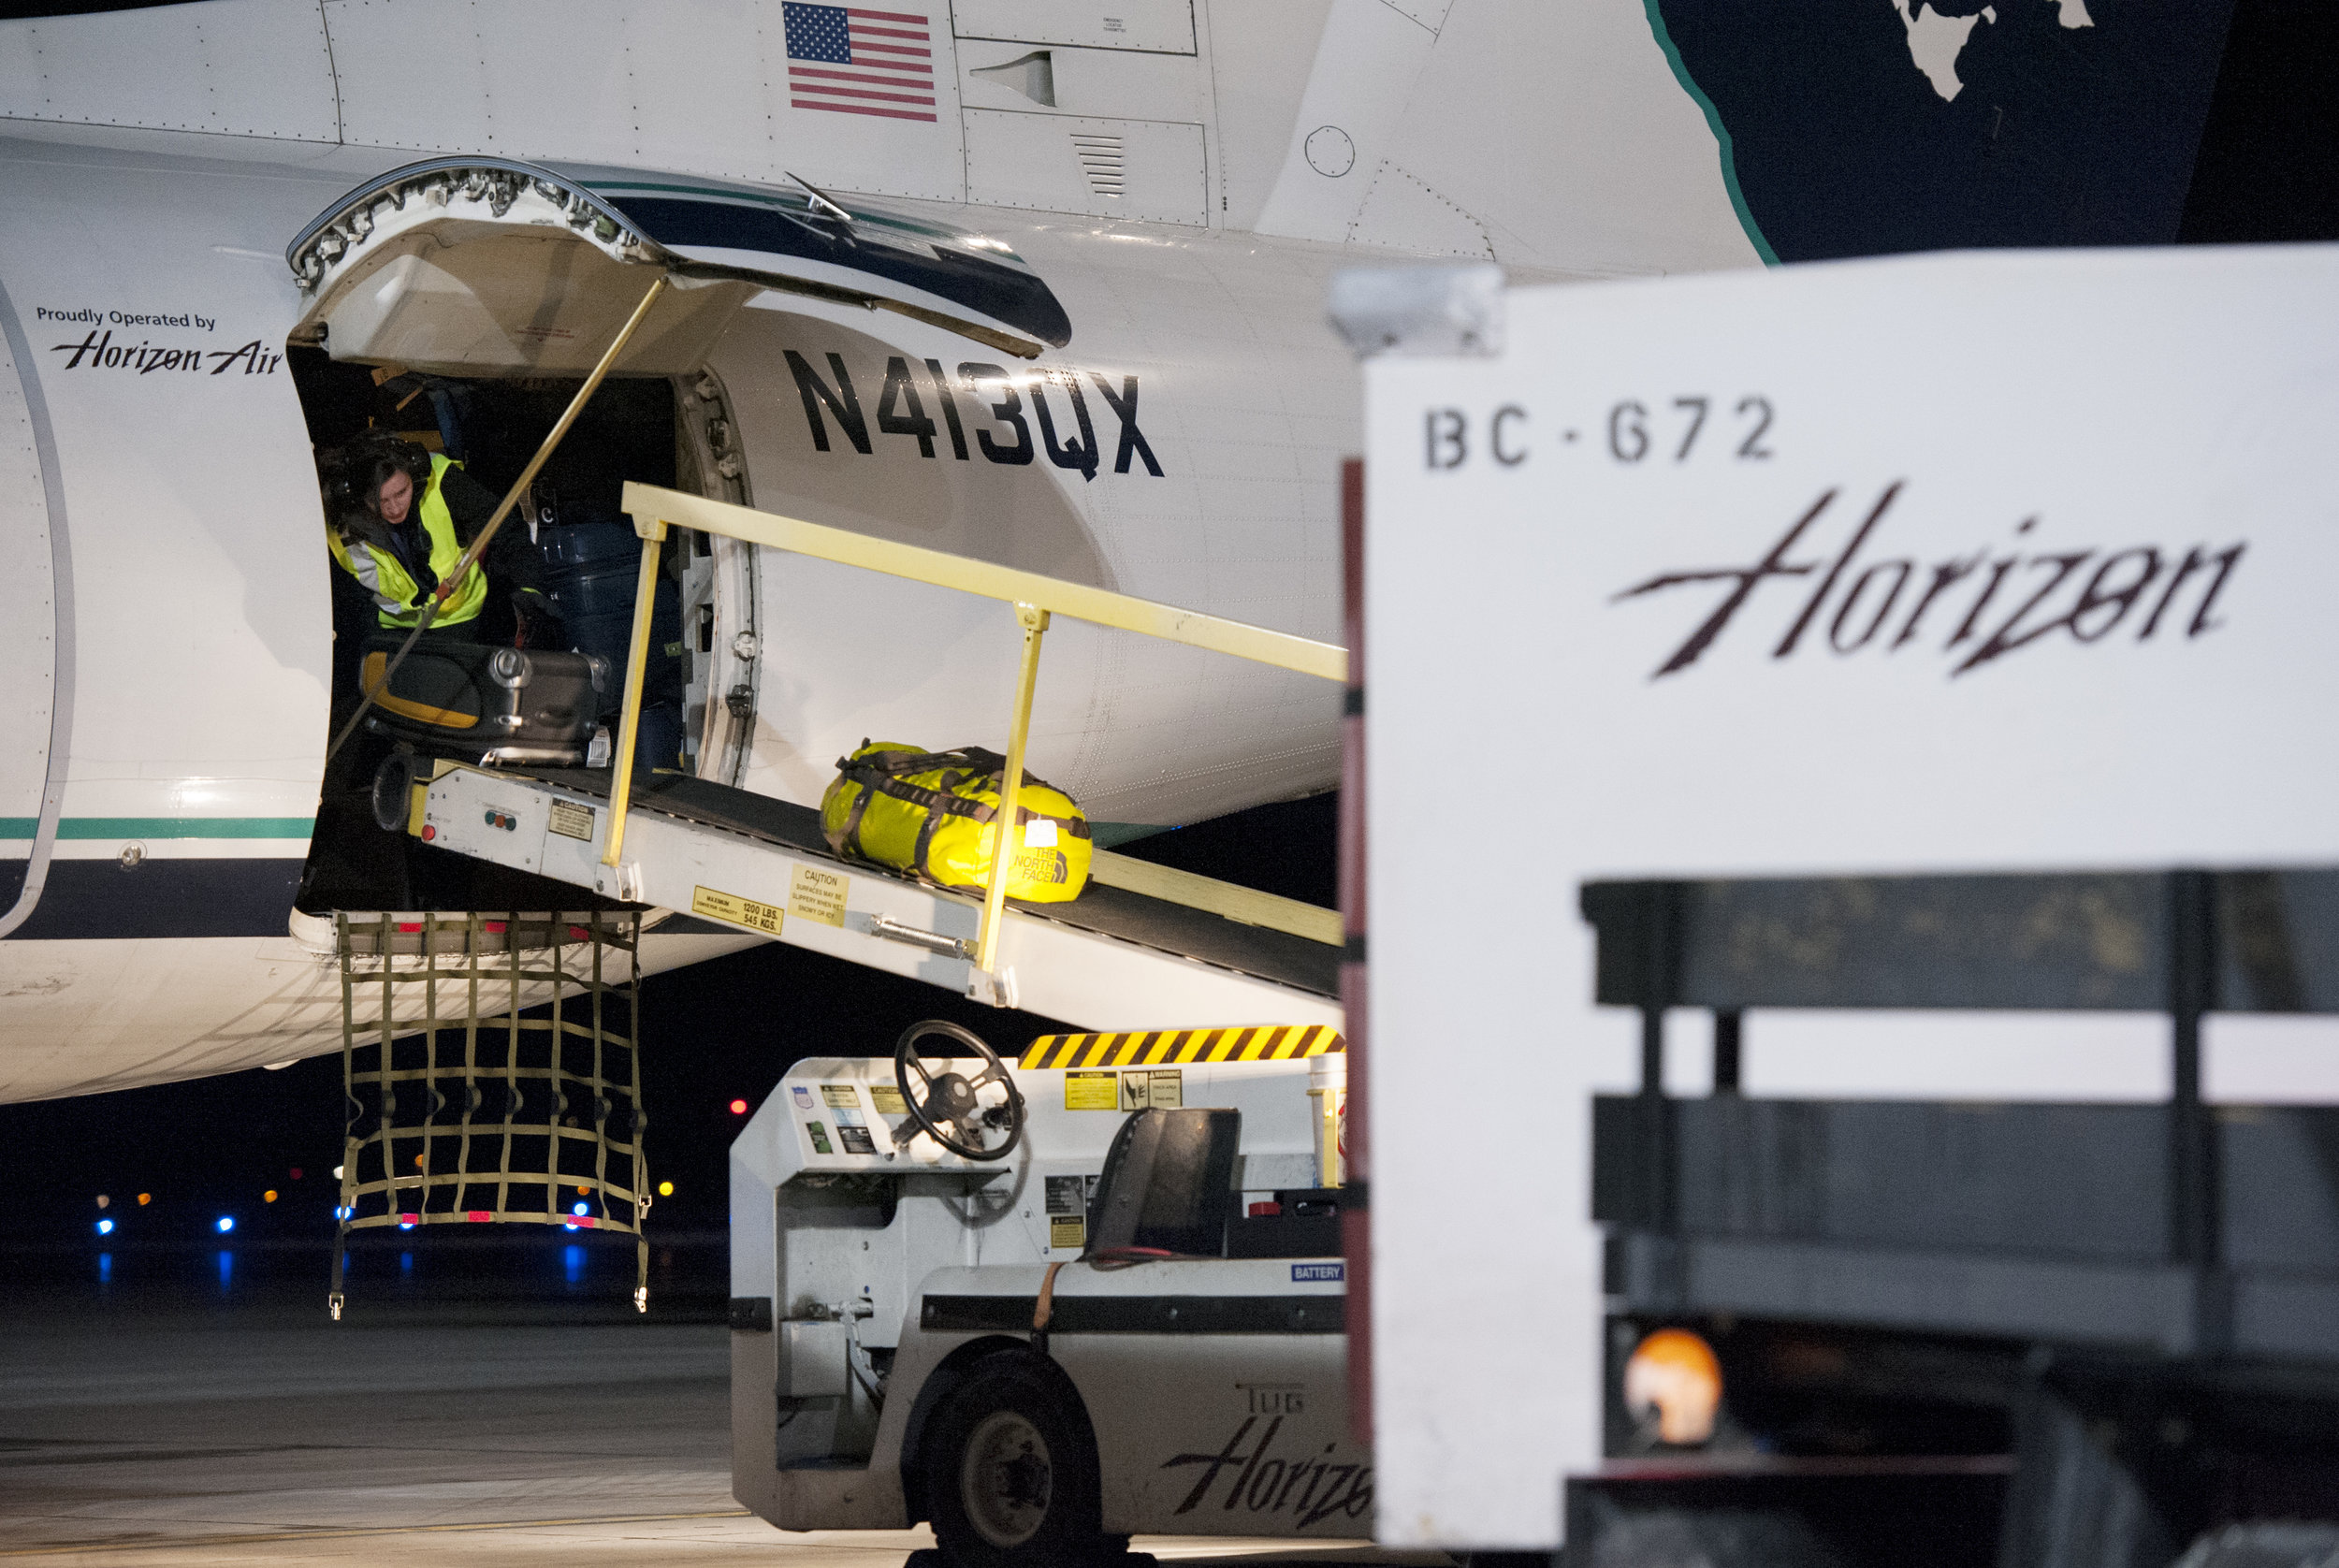 A ramp agent at Bozeman Yellowstone International Airport offloads baggage on a flight inbound from Seattle, Wash. Saturday, Jan. 28, 2017.